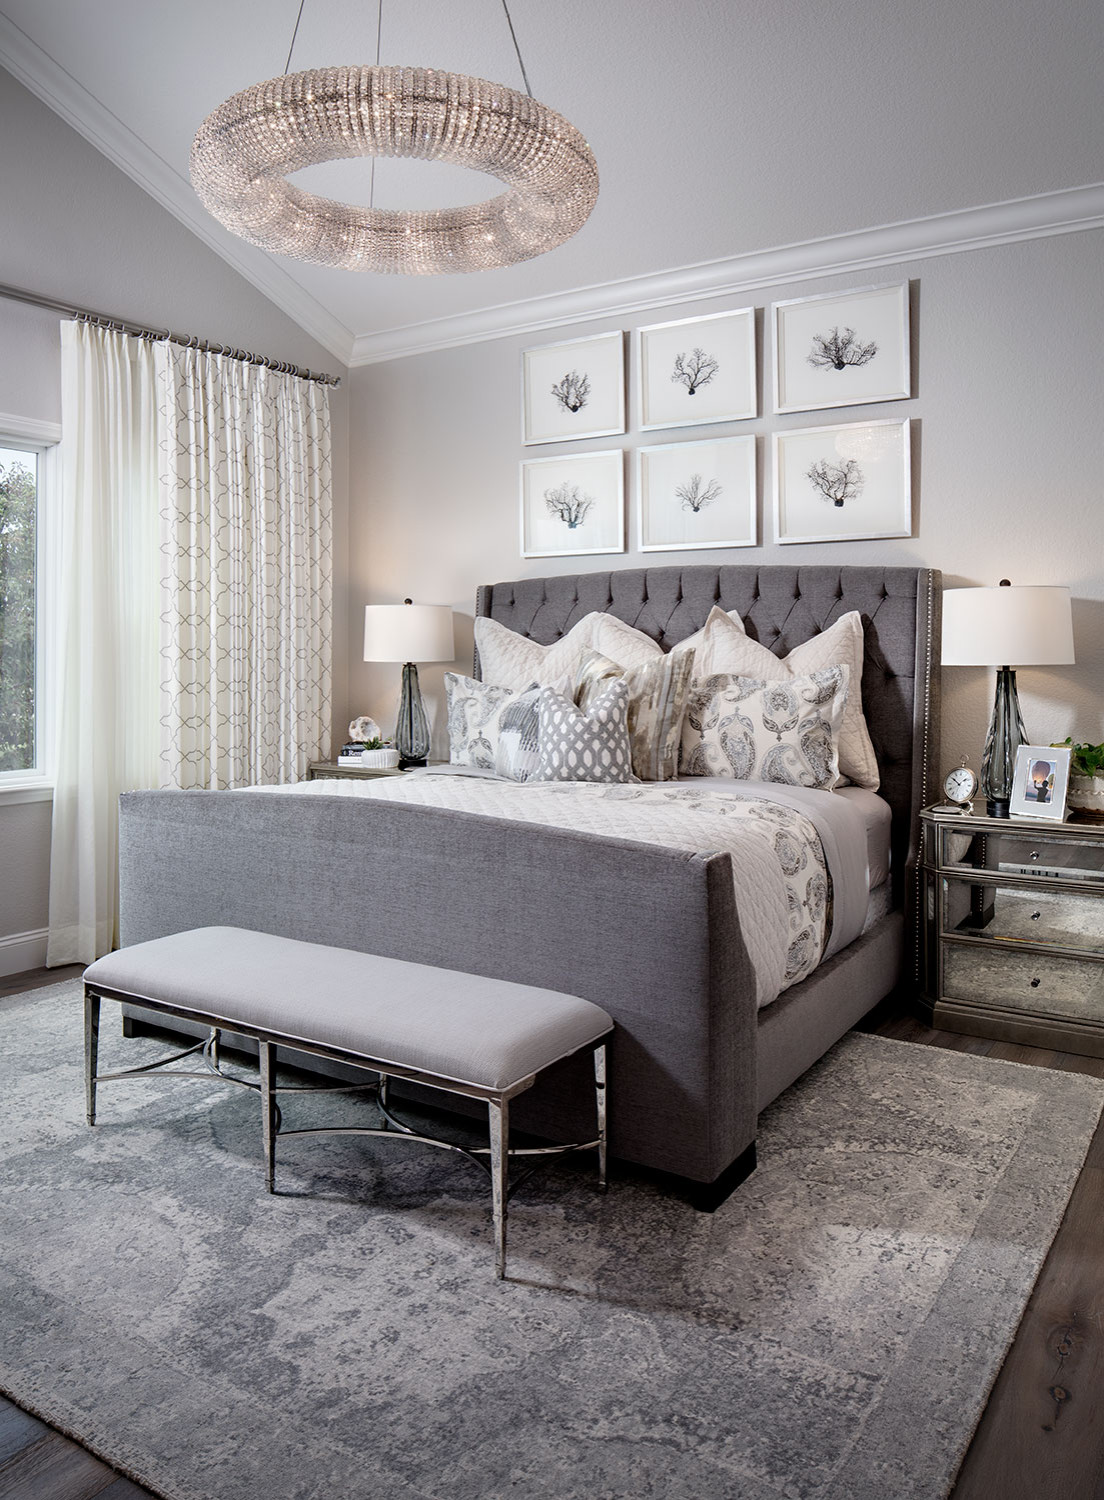 75 Beautiful Gray Bedroom Pictures Ideas September 2020 Houzz